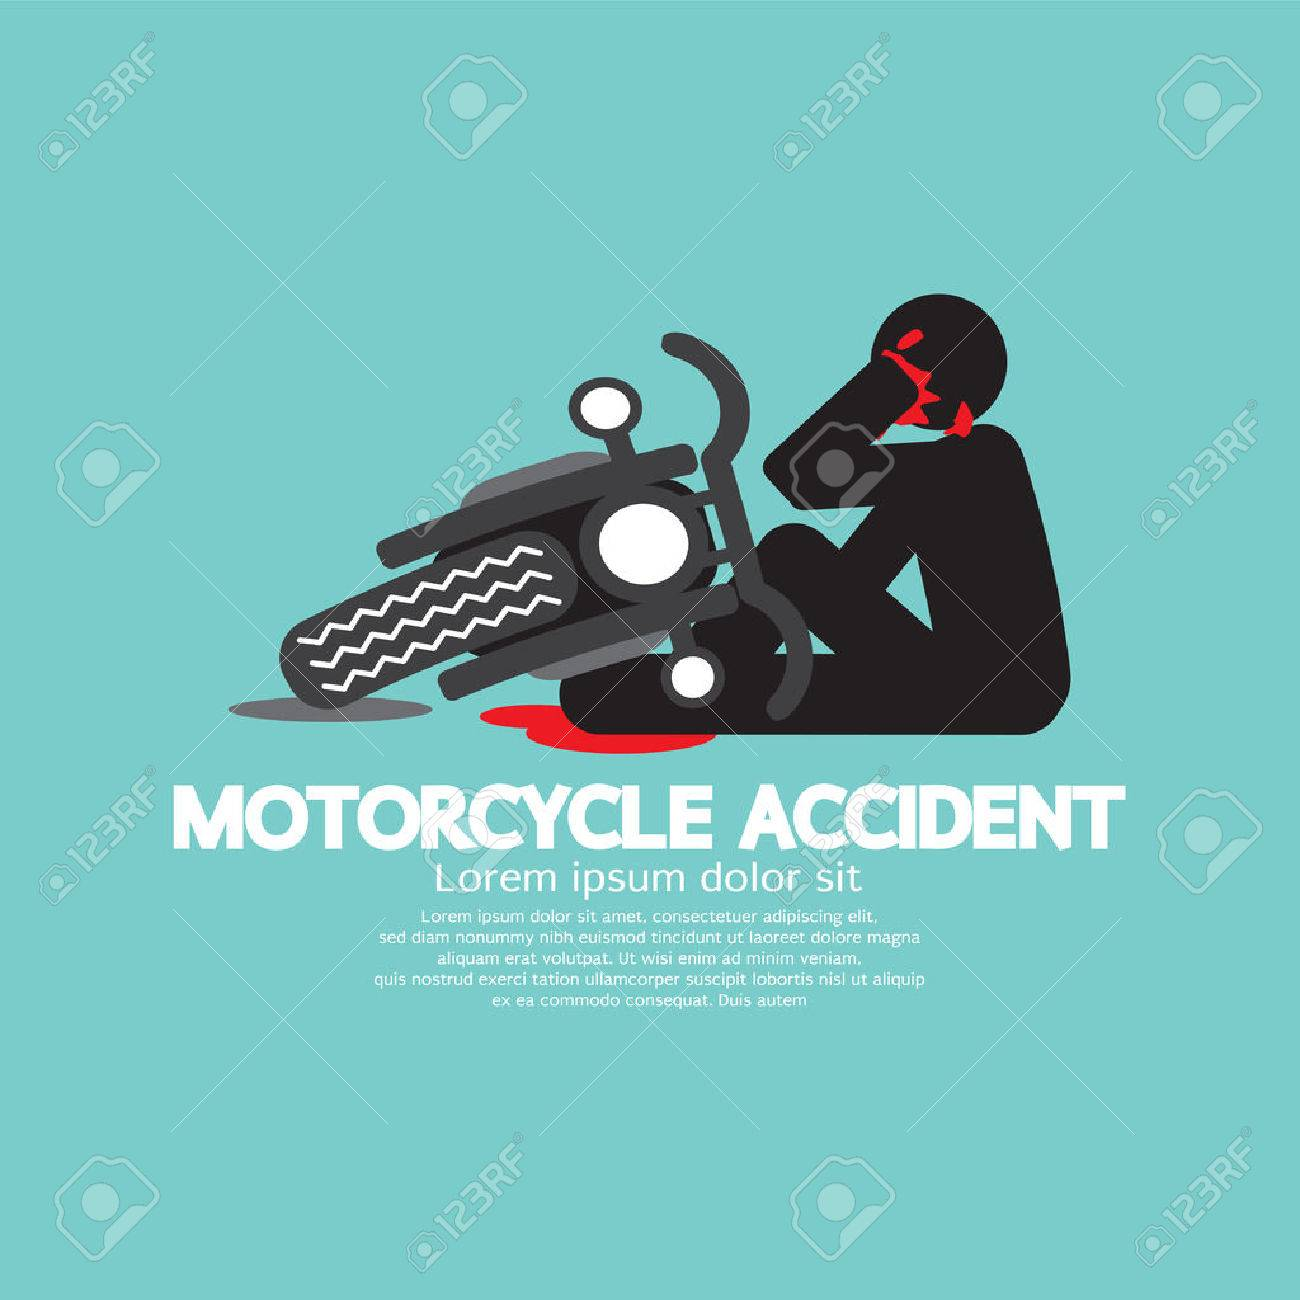 Biker With Motorcycle Have In An Accident Vector Illustration.